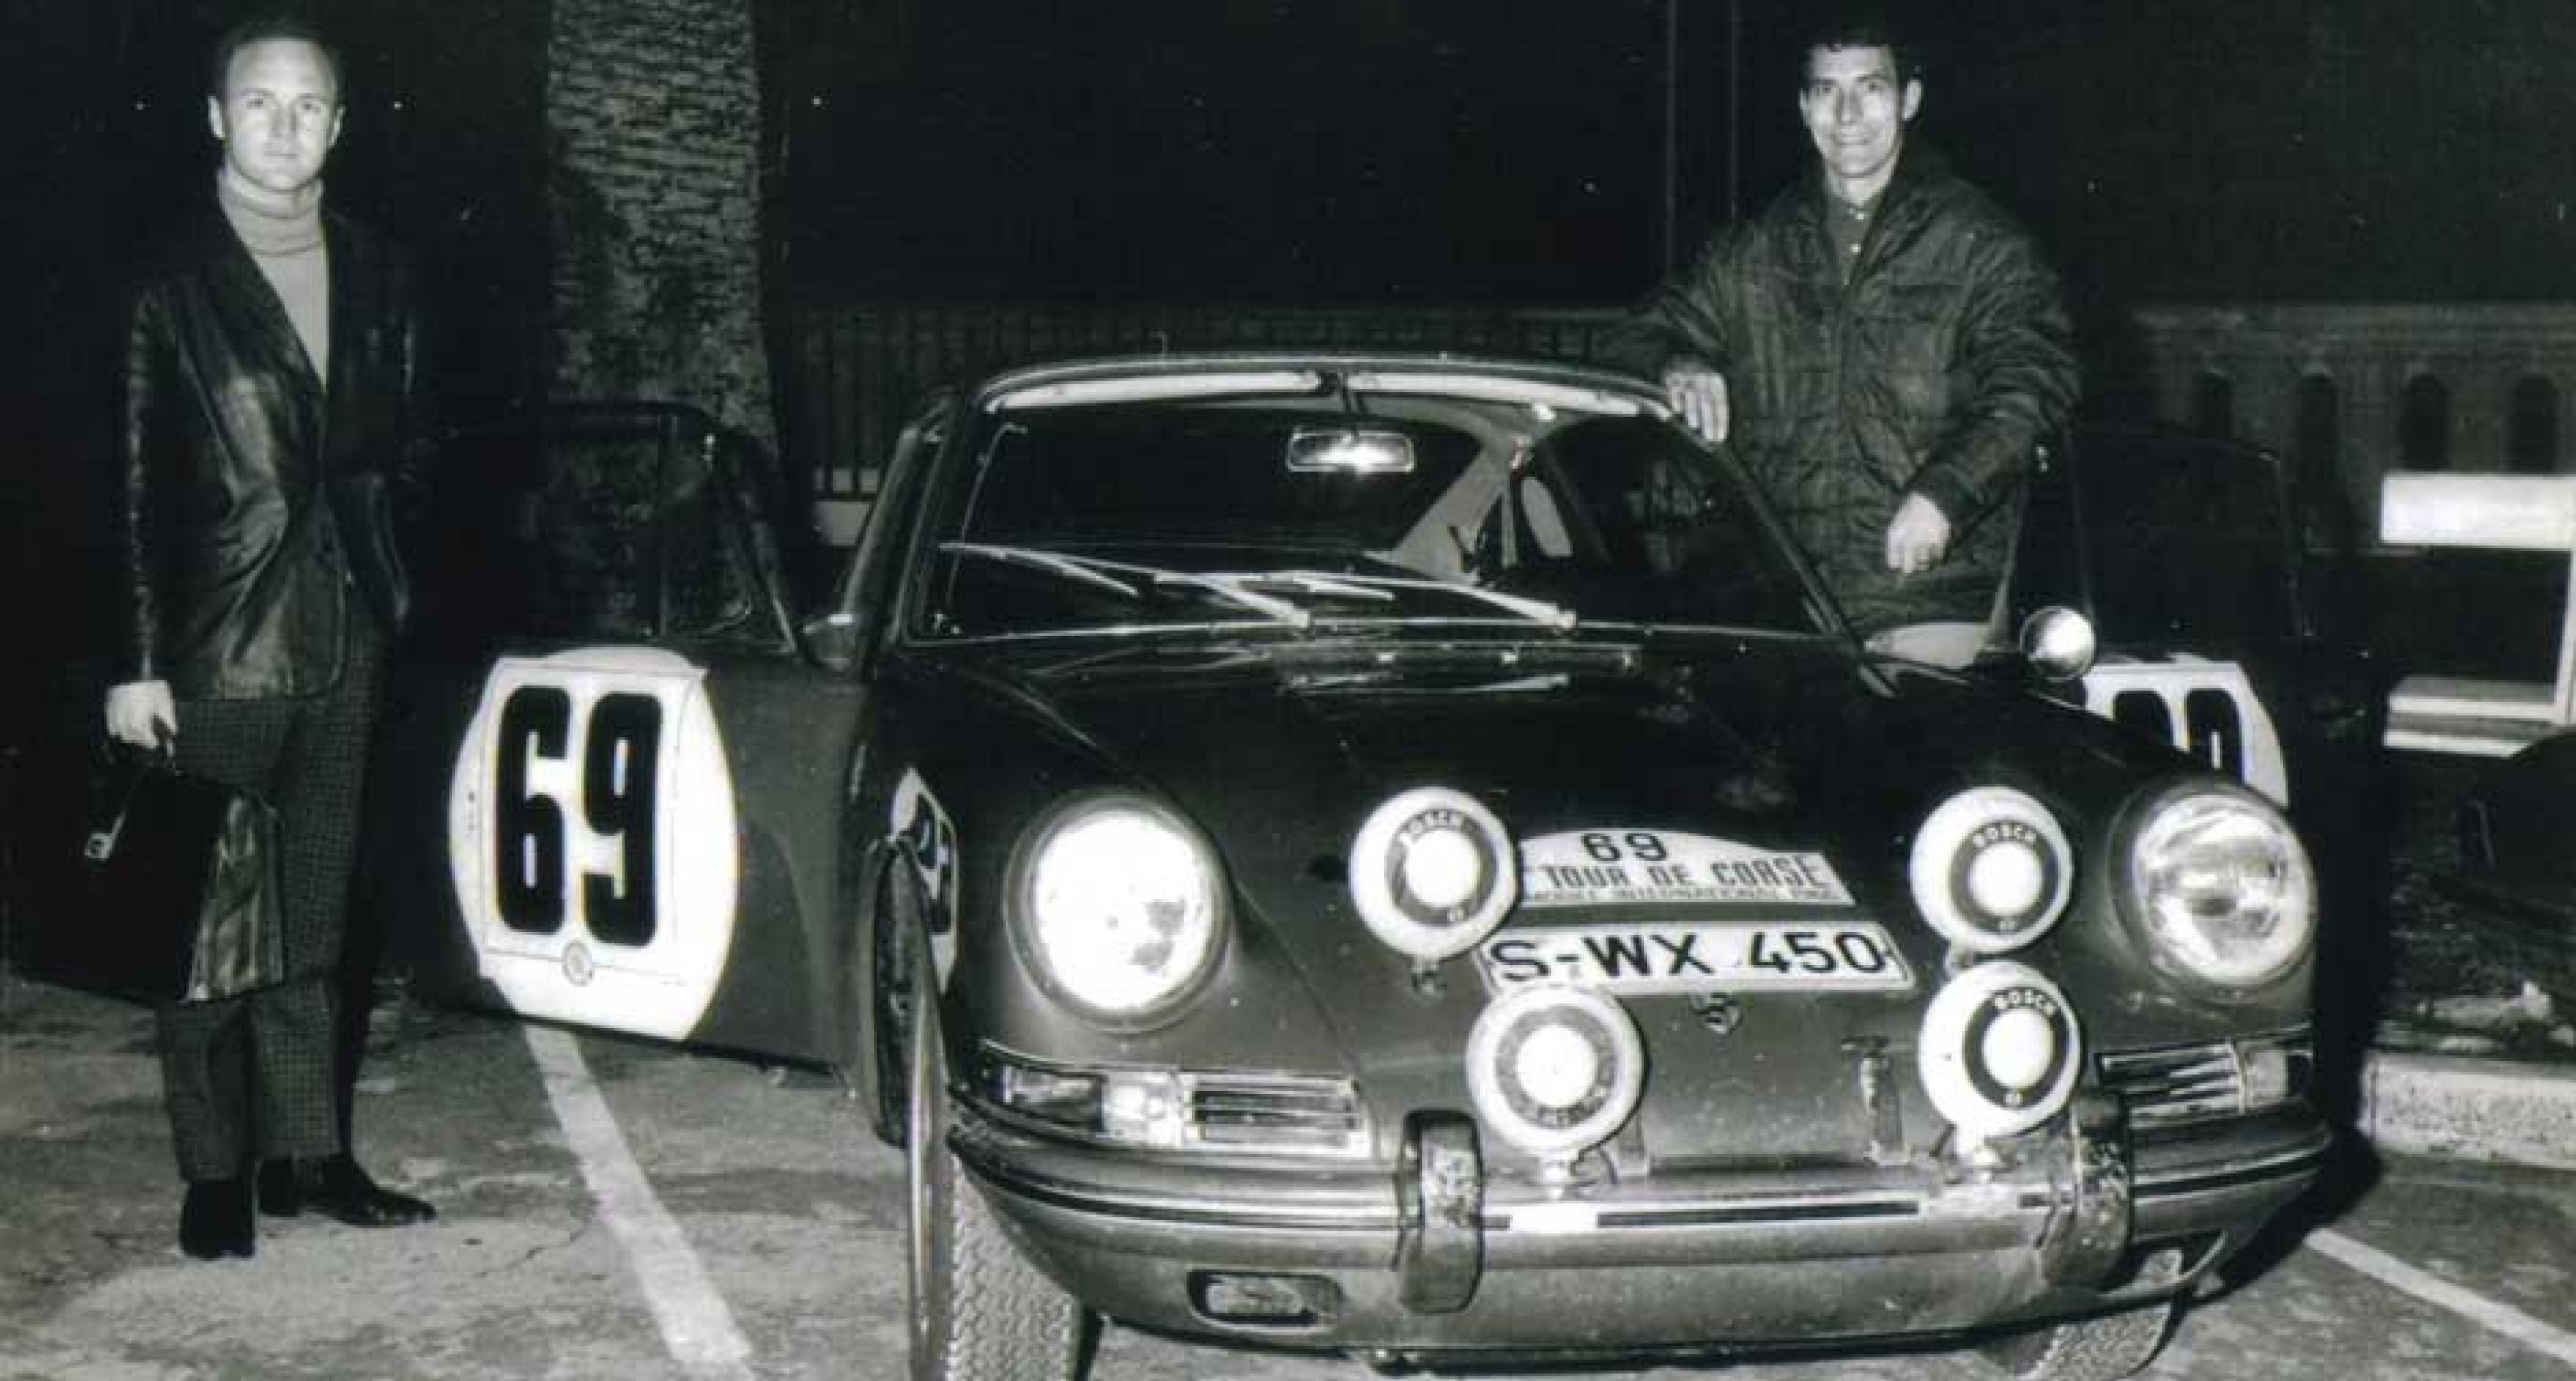 """Elford's first ever drive in a 911: 24 hours of the Tour de Corse in 1966, """"learning to drive it"""". They finished third."""